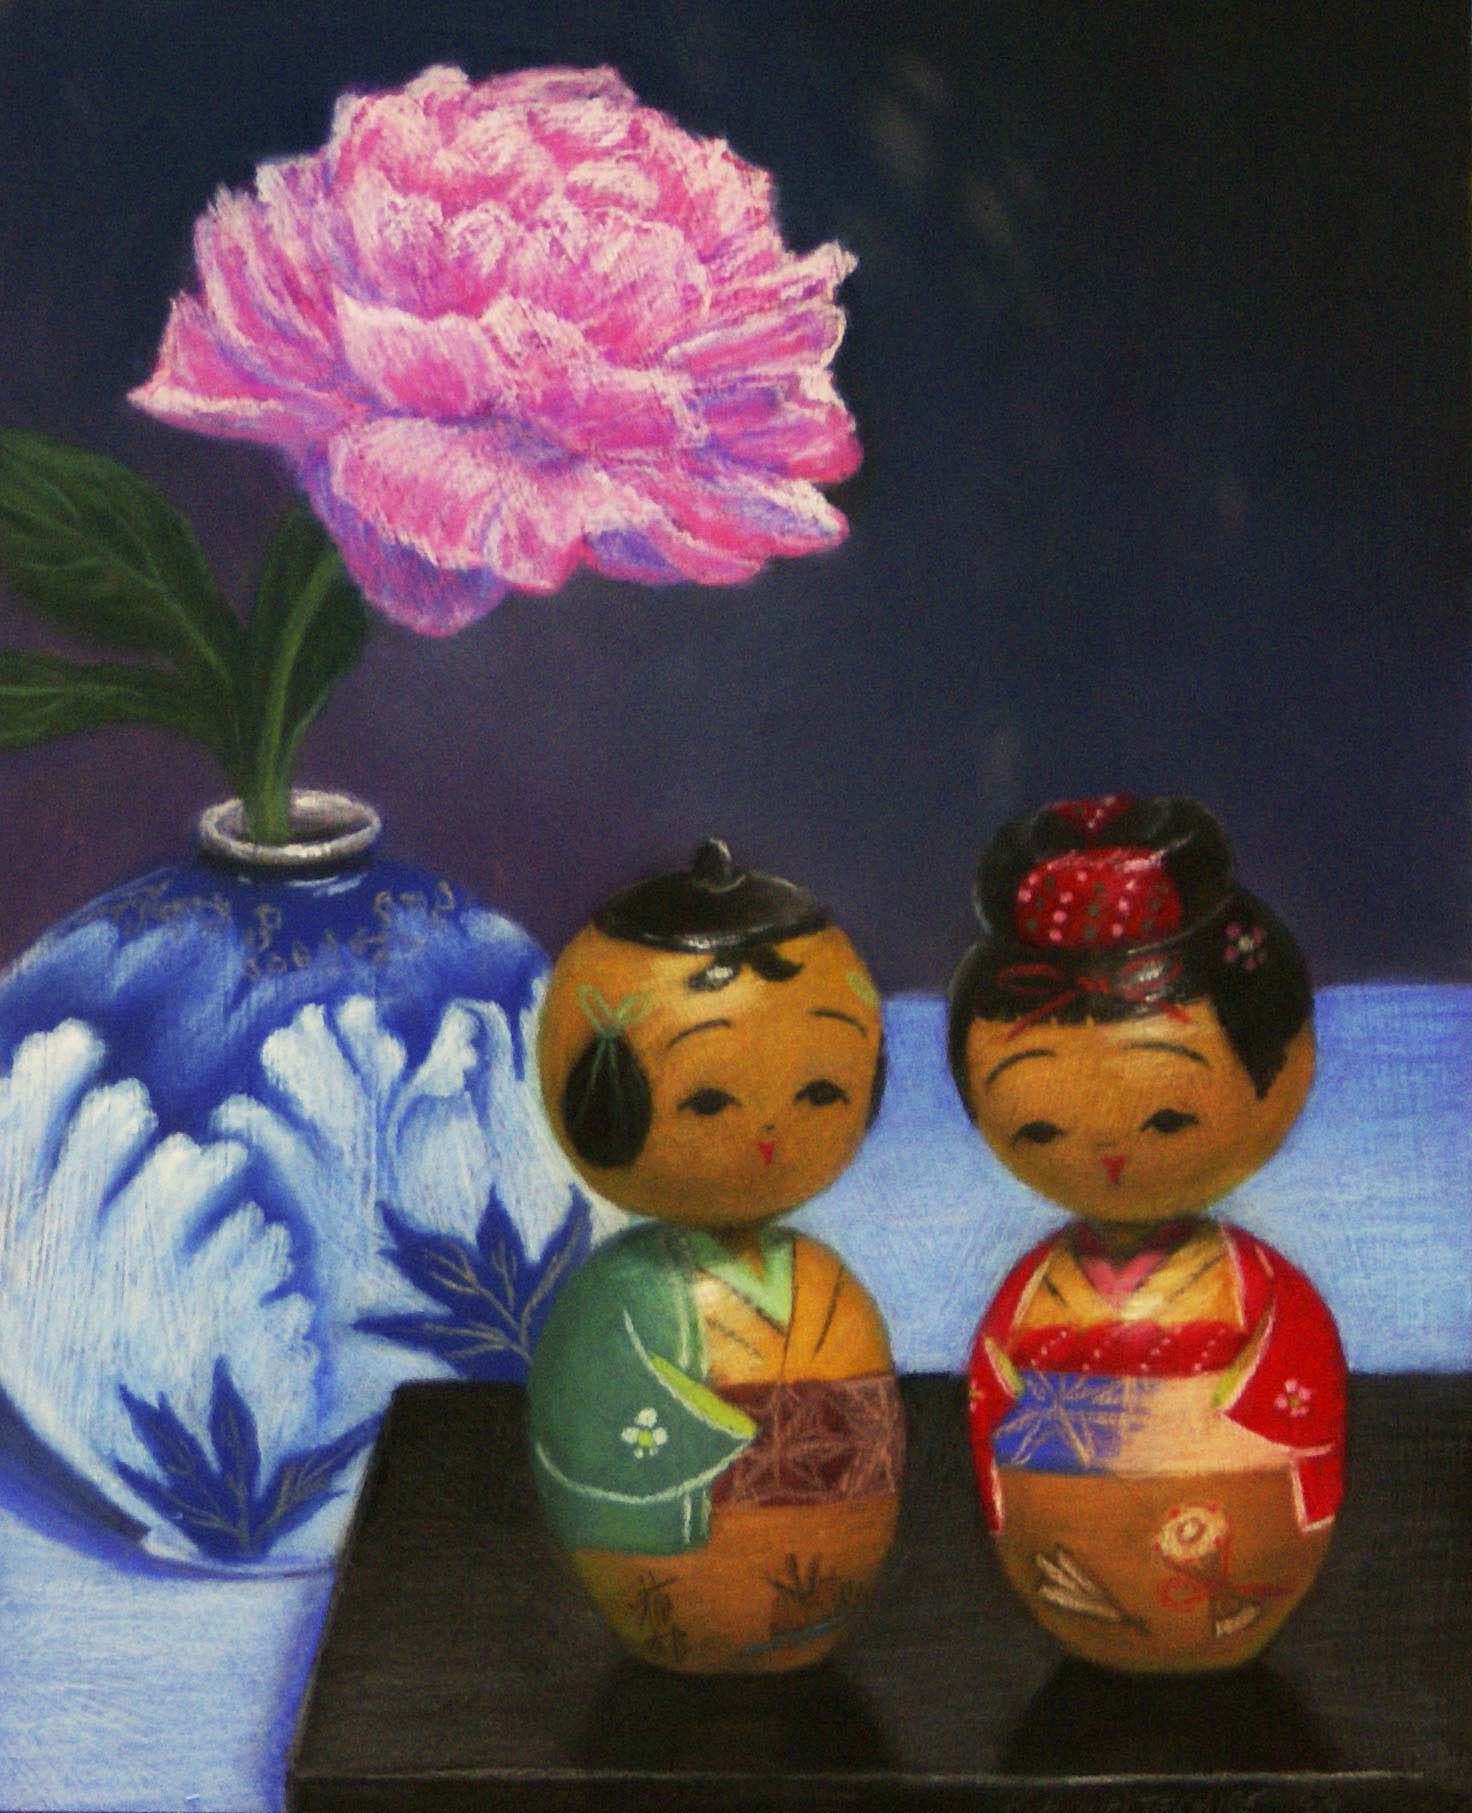 Blue Peony Vase with Old Dolls